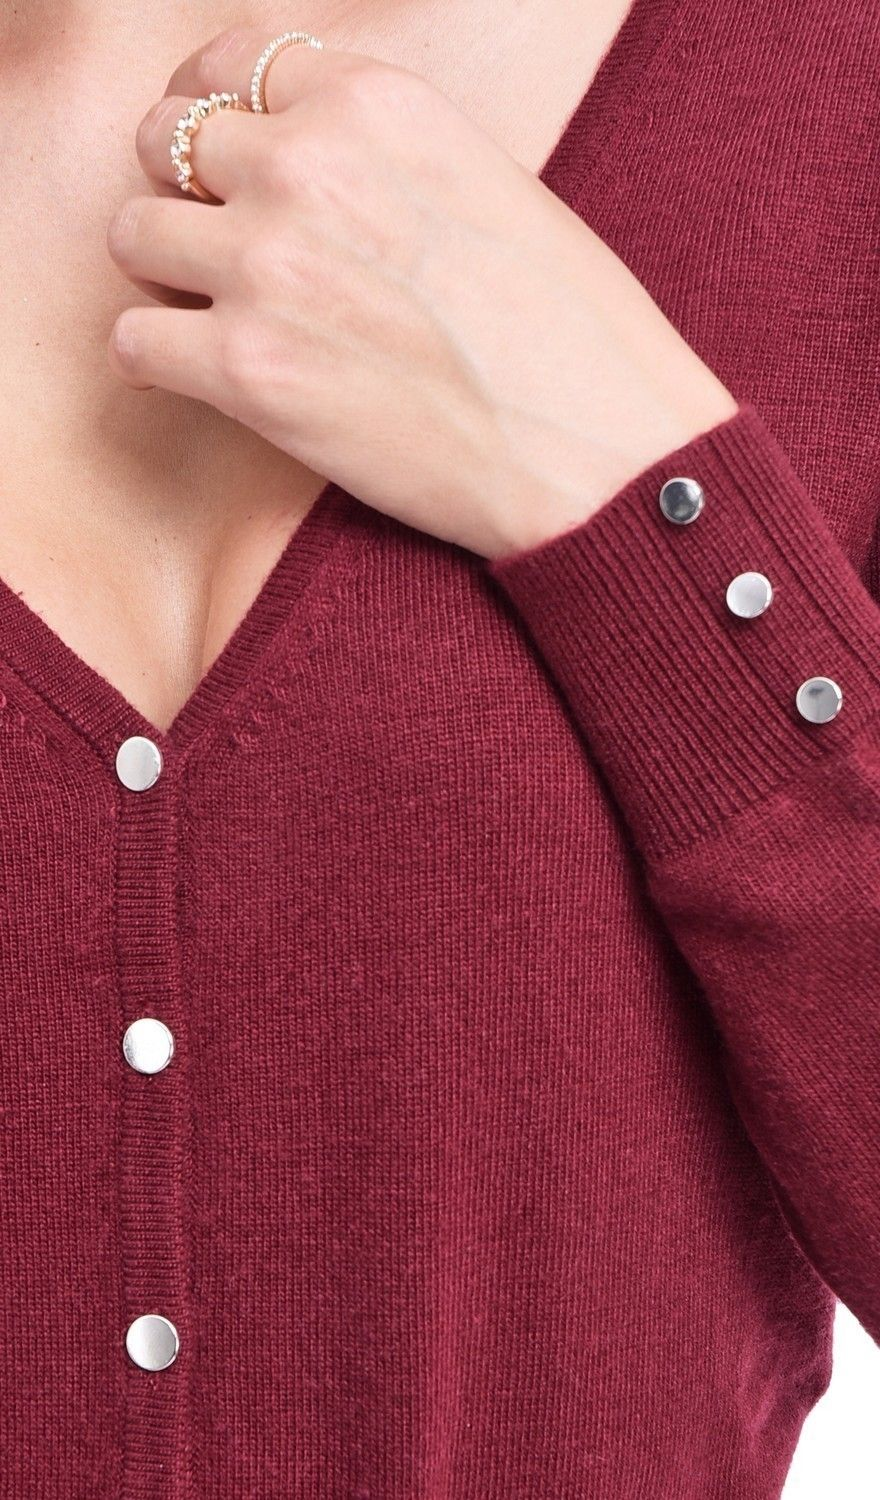 C&JO V-neck Cardigan with Silver Buttons in Maroon